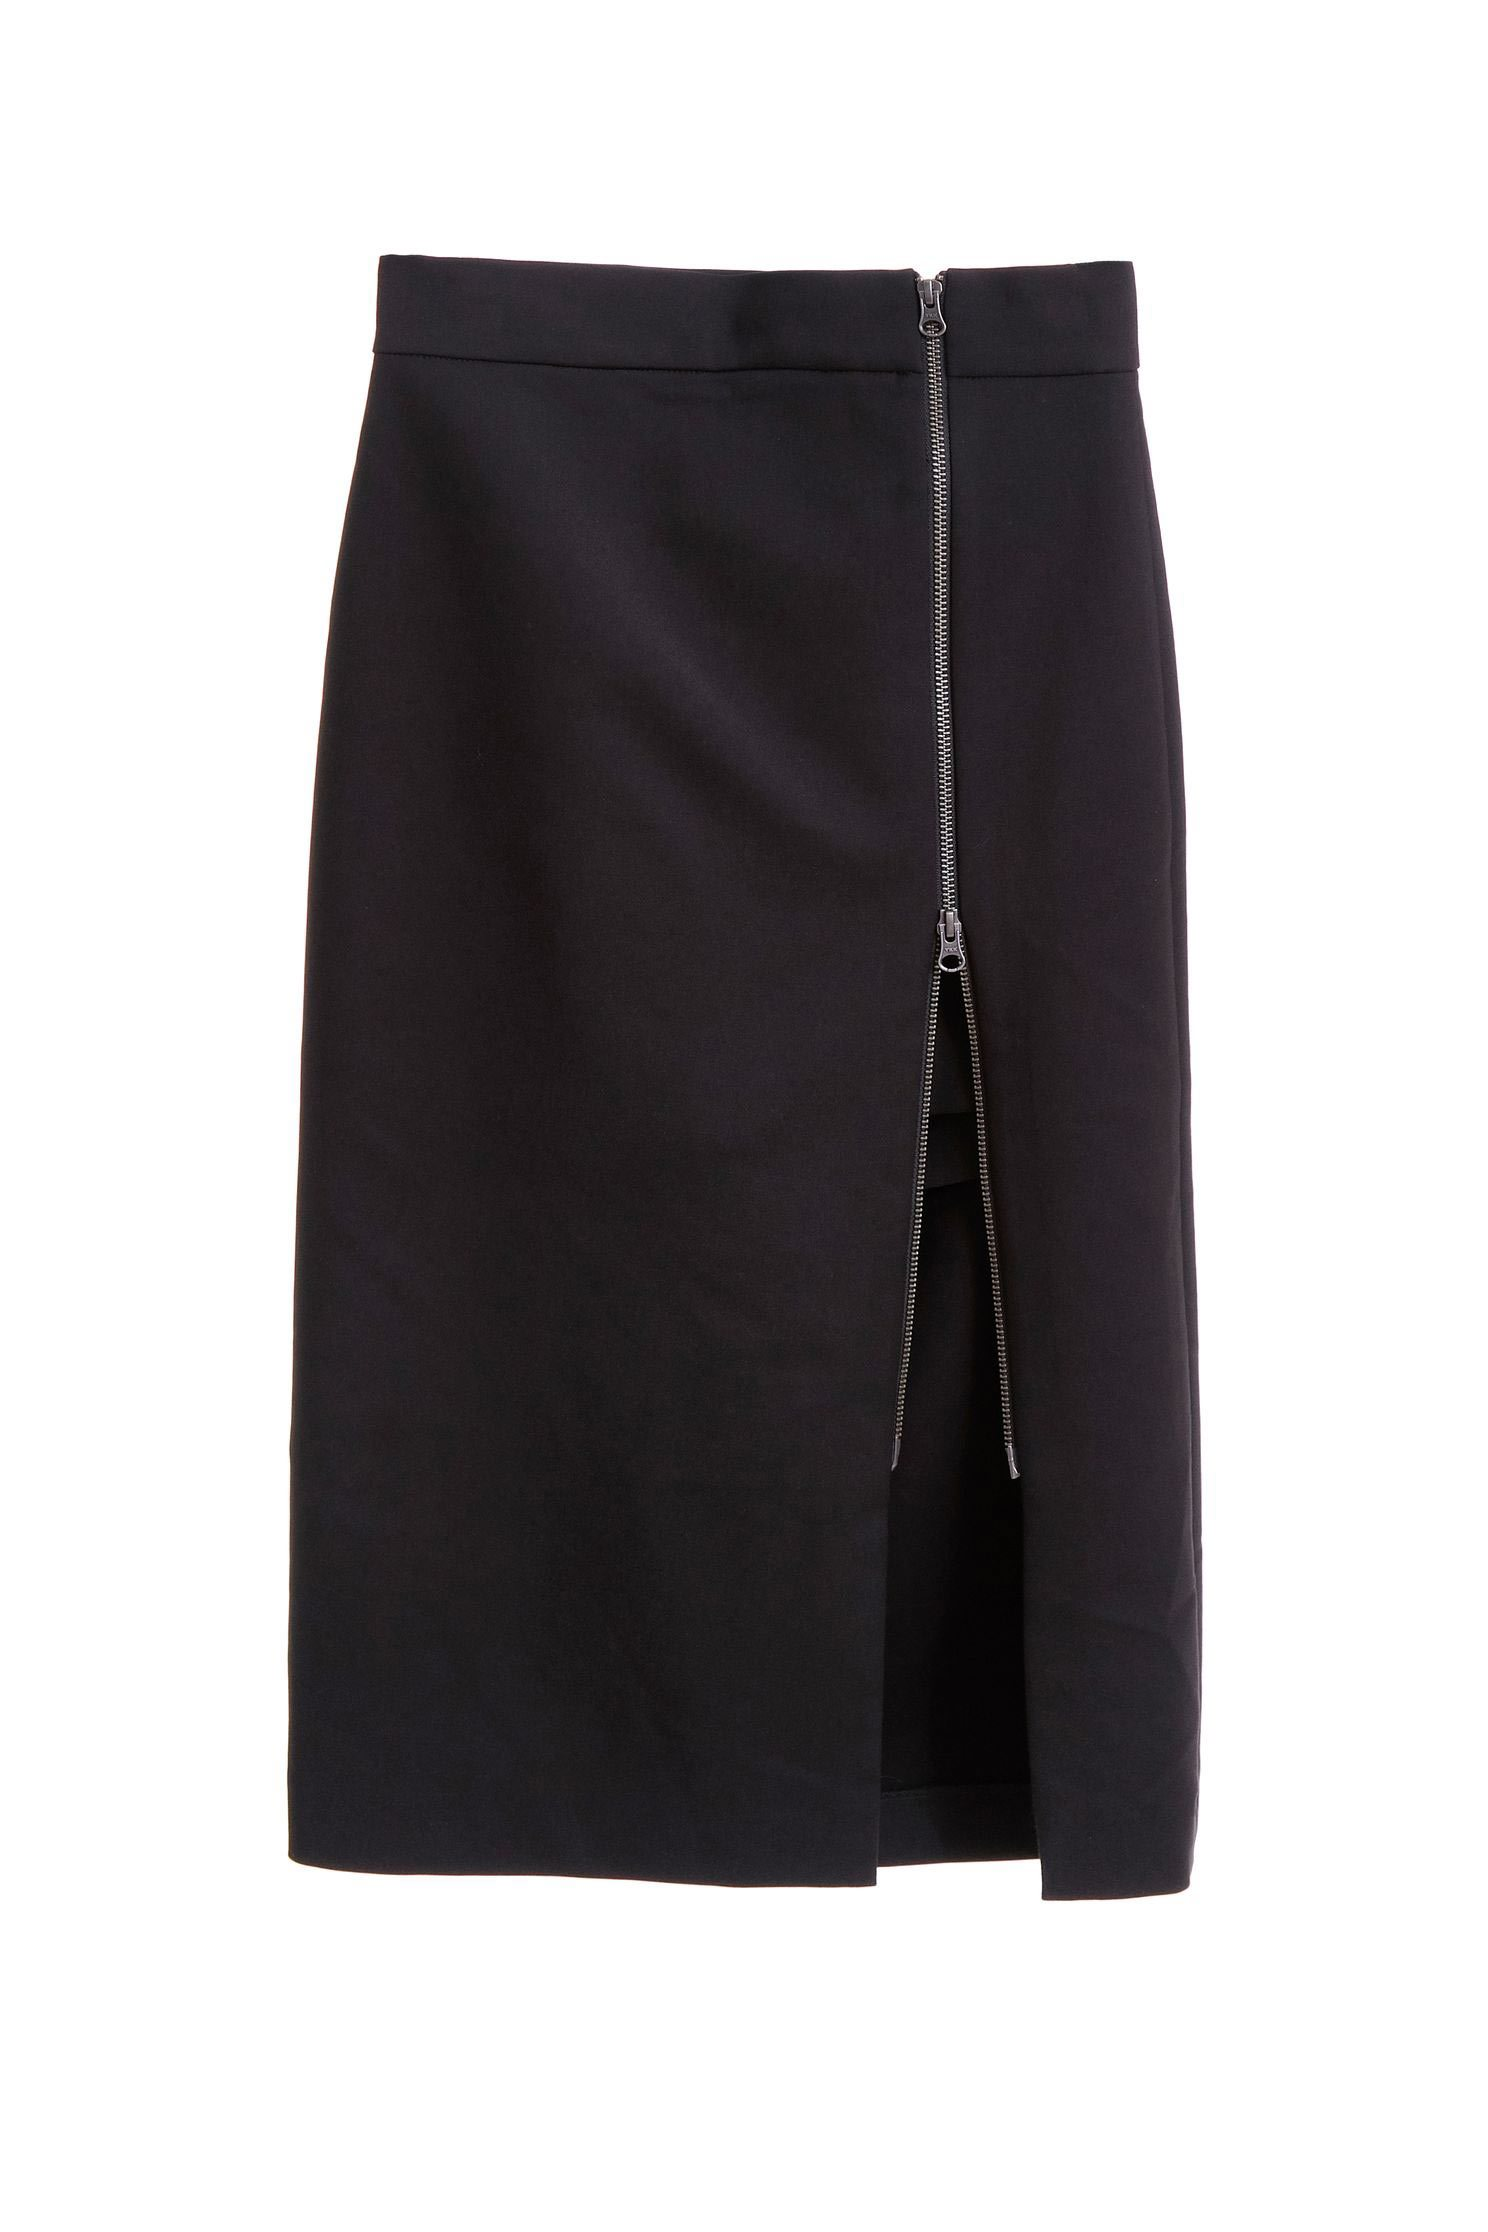 Double zipper split skirt pants